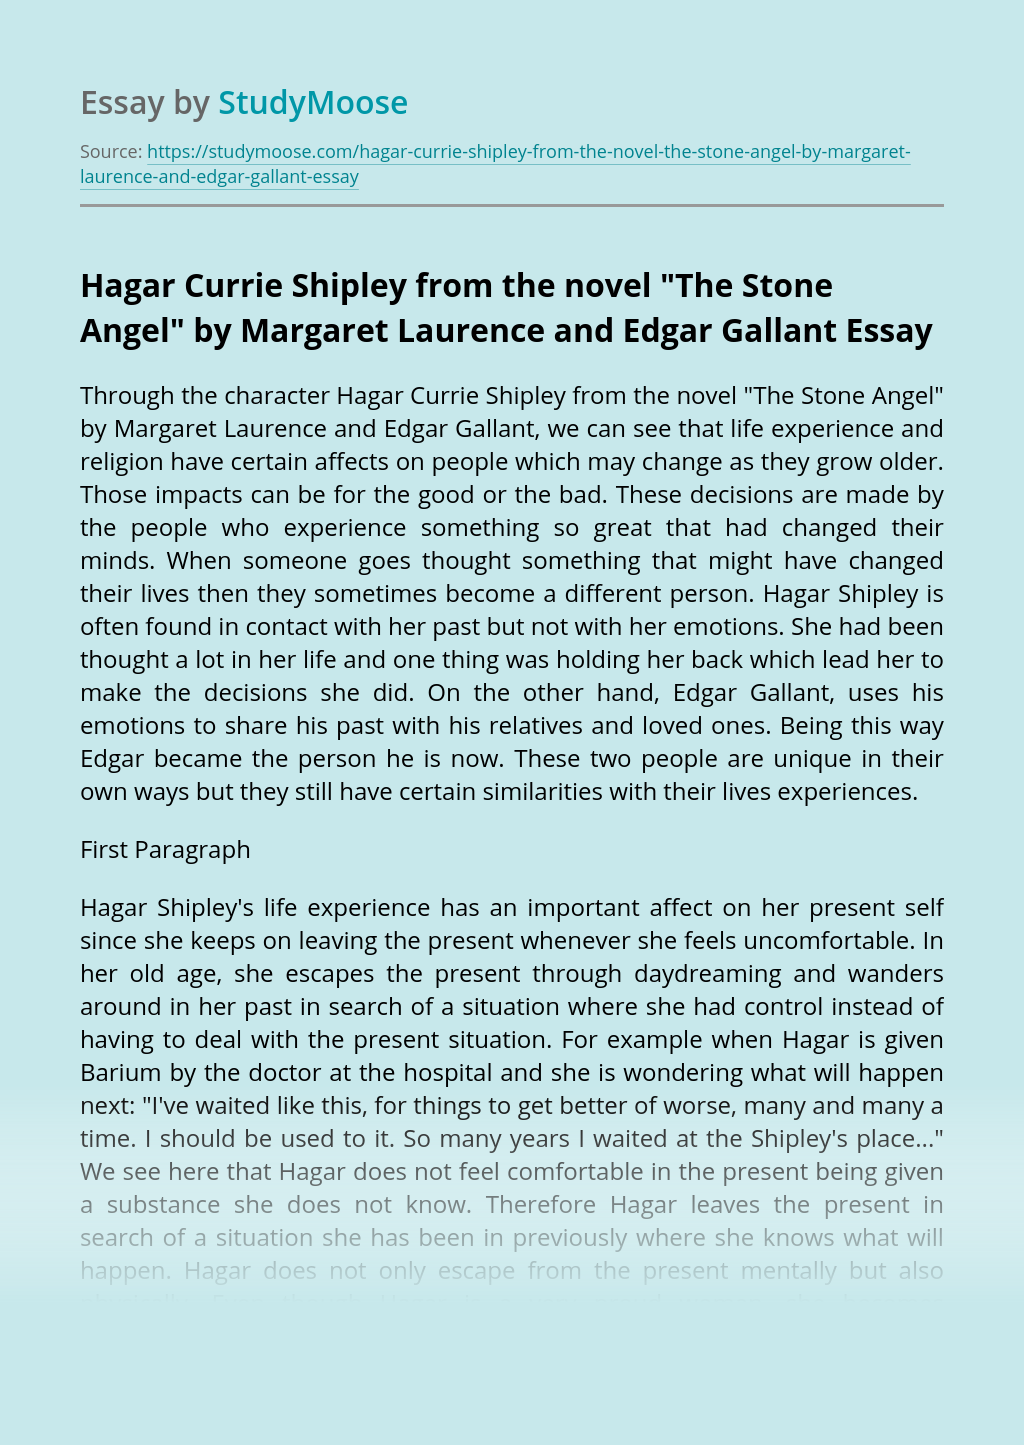 """Hagar Currie Shipley from the novel """"The Stone Angel"""" by Margaret Laurence and Edgar Gallant"""